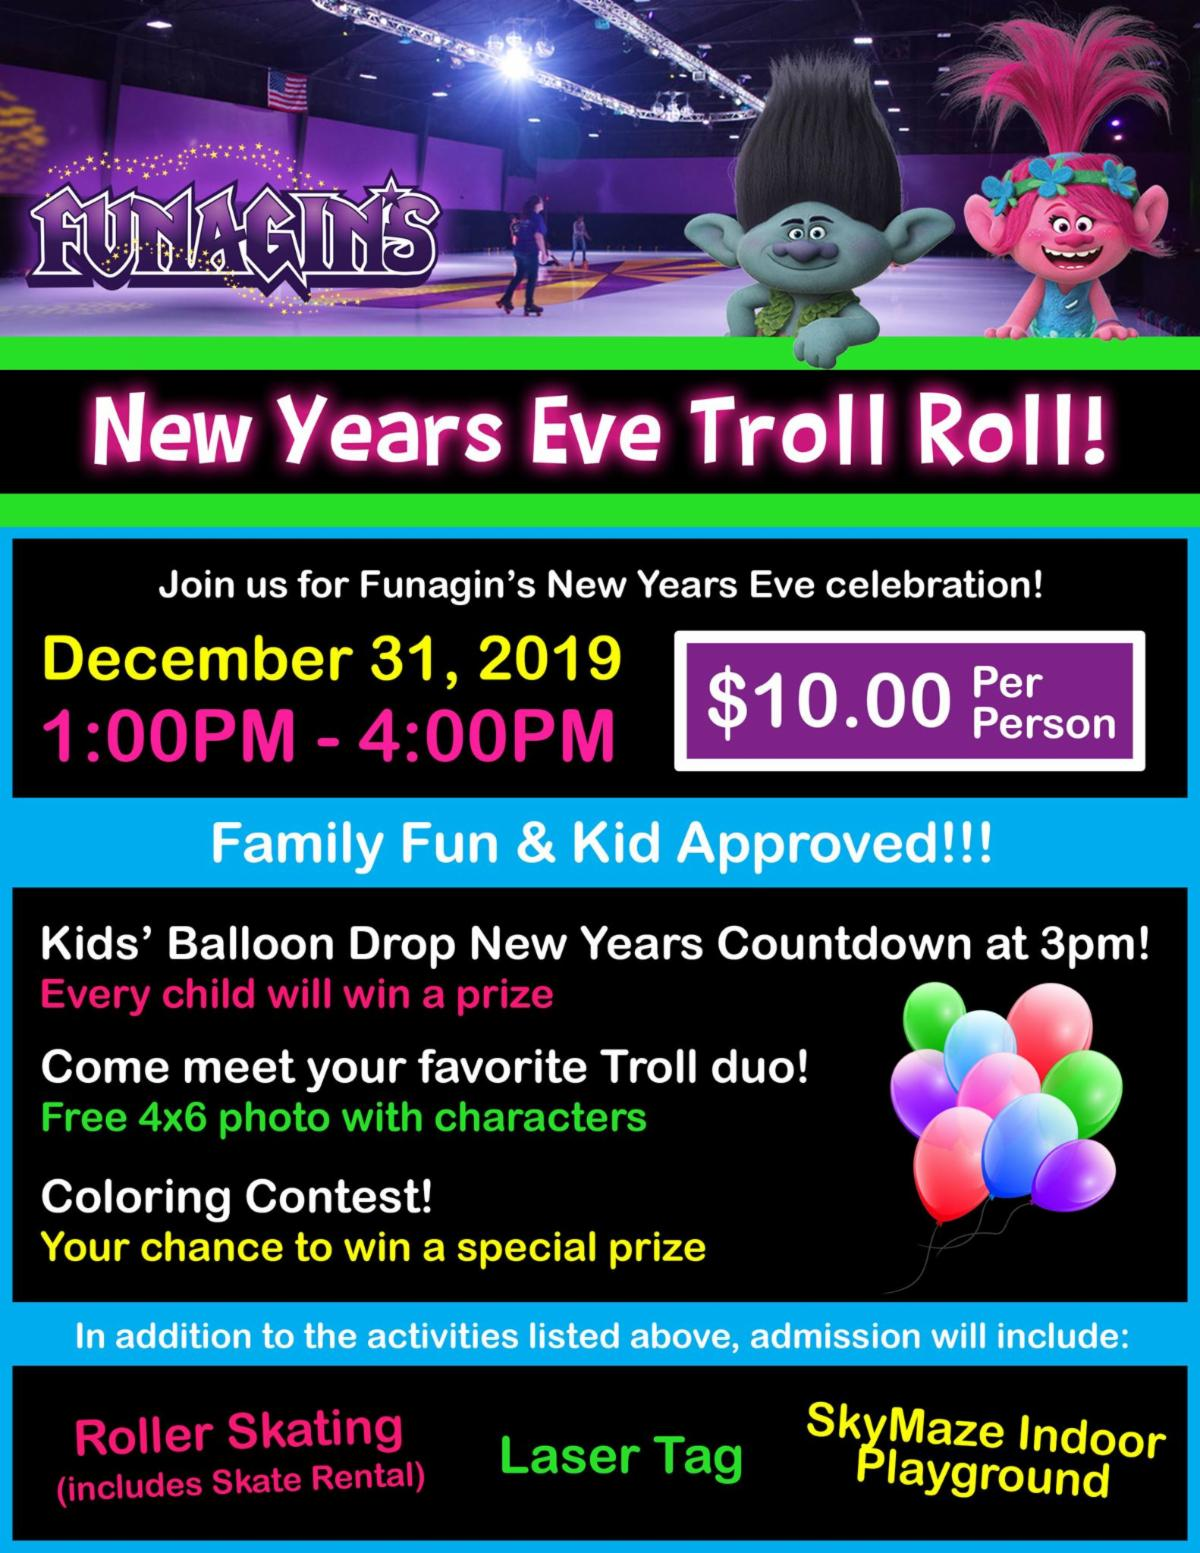 Troll Roll on New Year's Eve at Funagin's in Sylvania